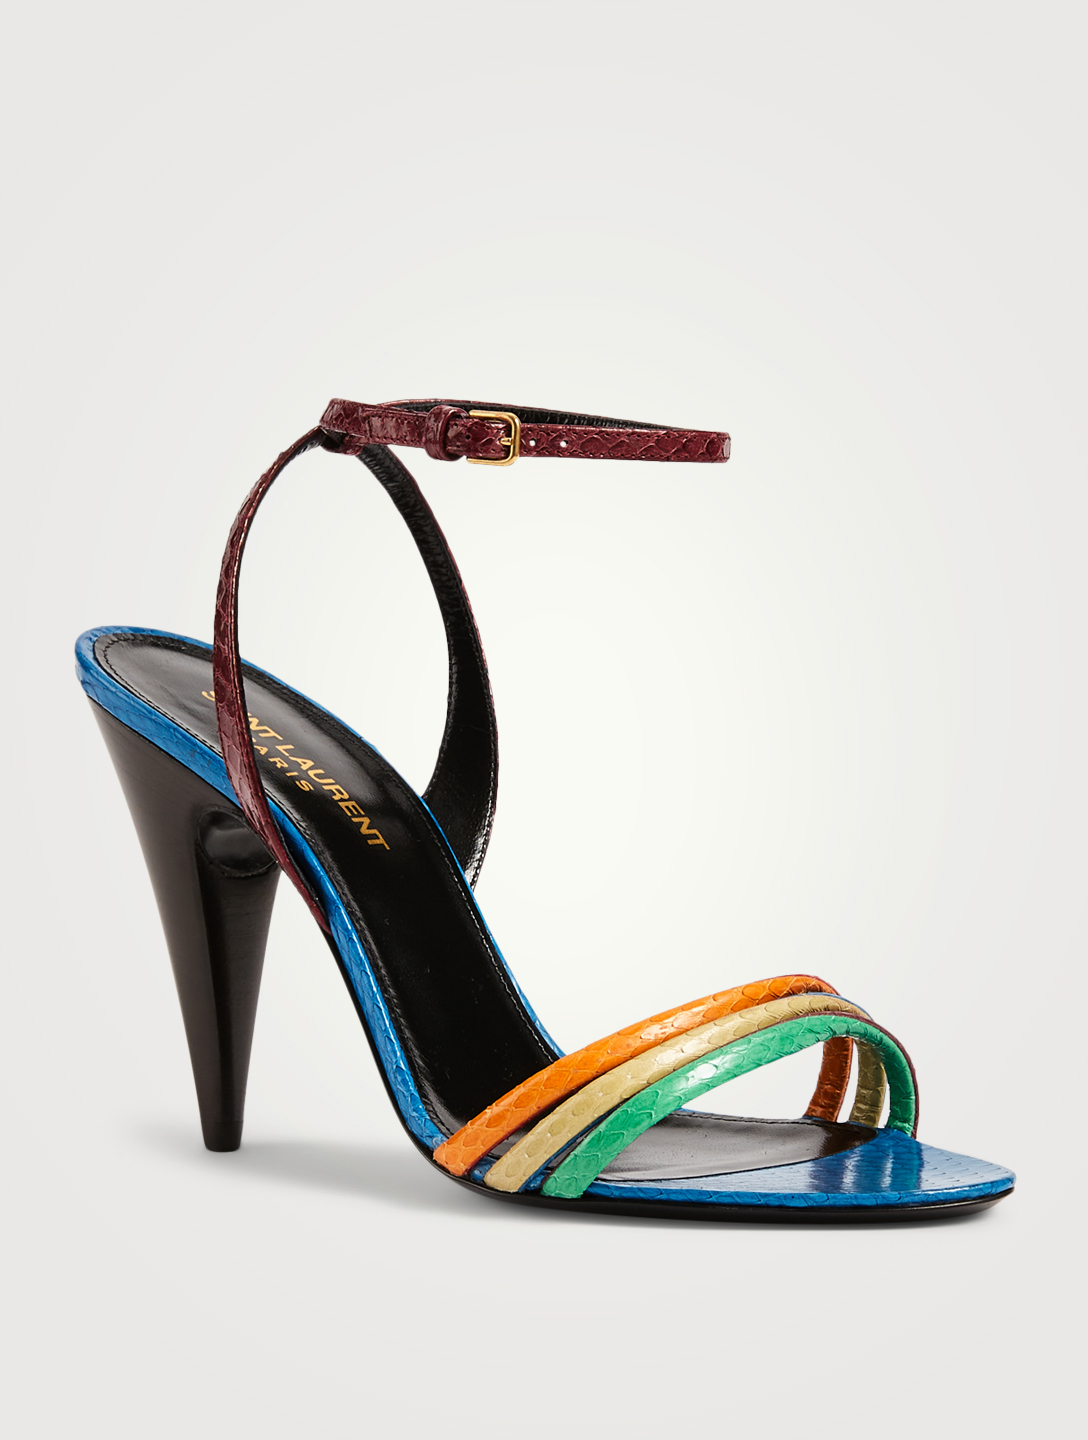 SAINT LAURENT Liya 95 Ayers Leather Heeled Sandals Women's Multi